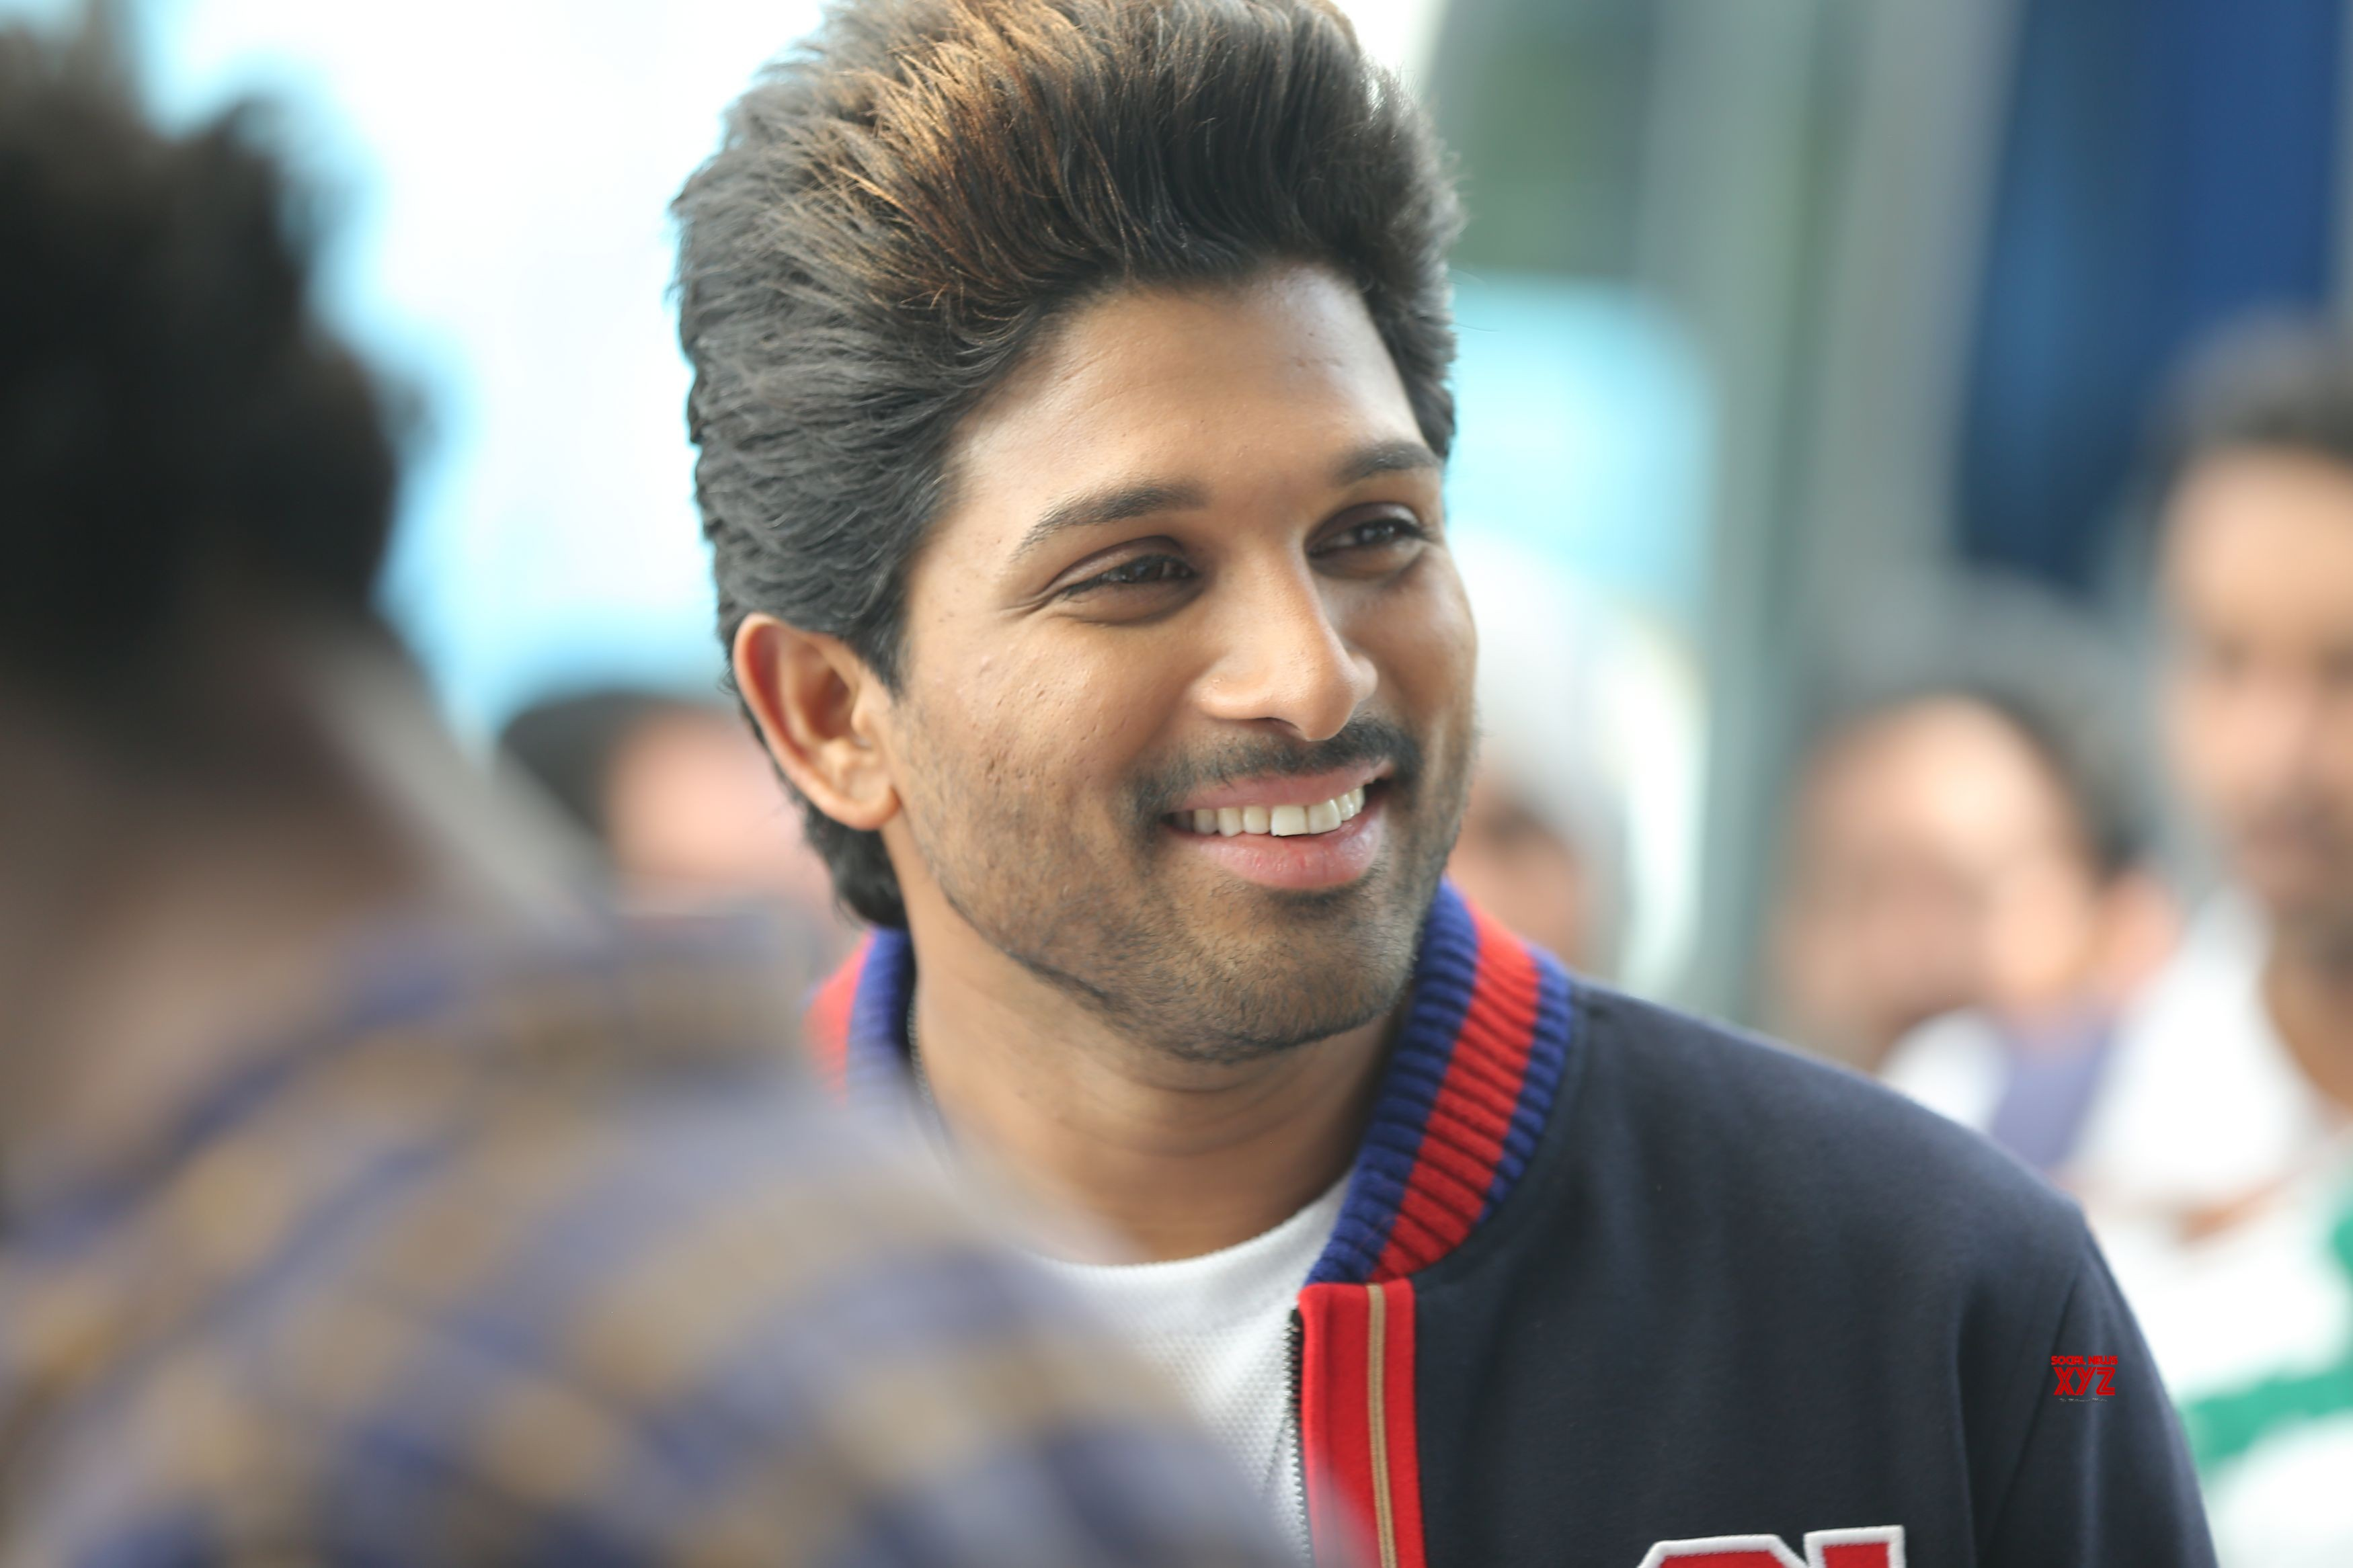 What will Allu Arjun do now?